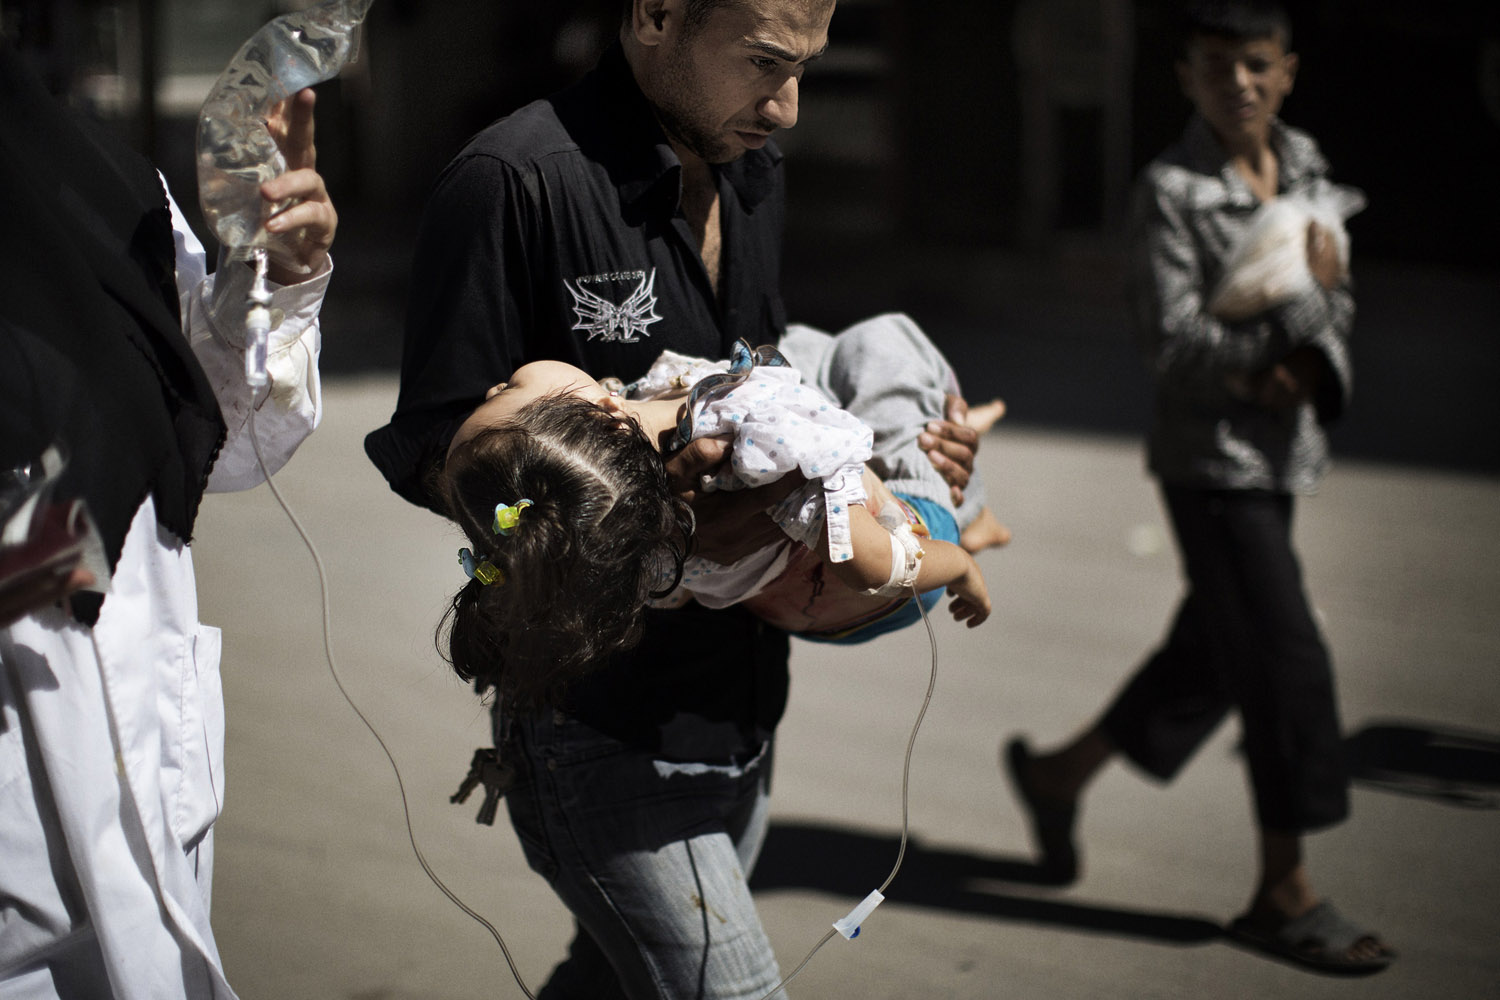 Sept. 18, 2012. A Syrian man carries his wounded daughter outside a hospital in the northern city of Aleppo.